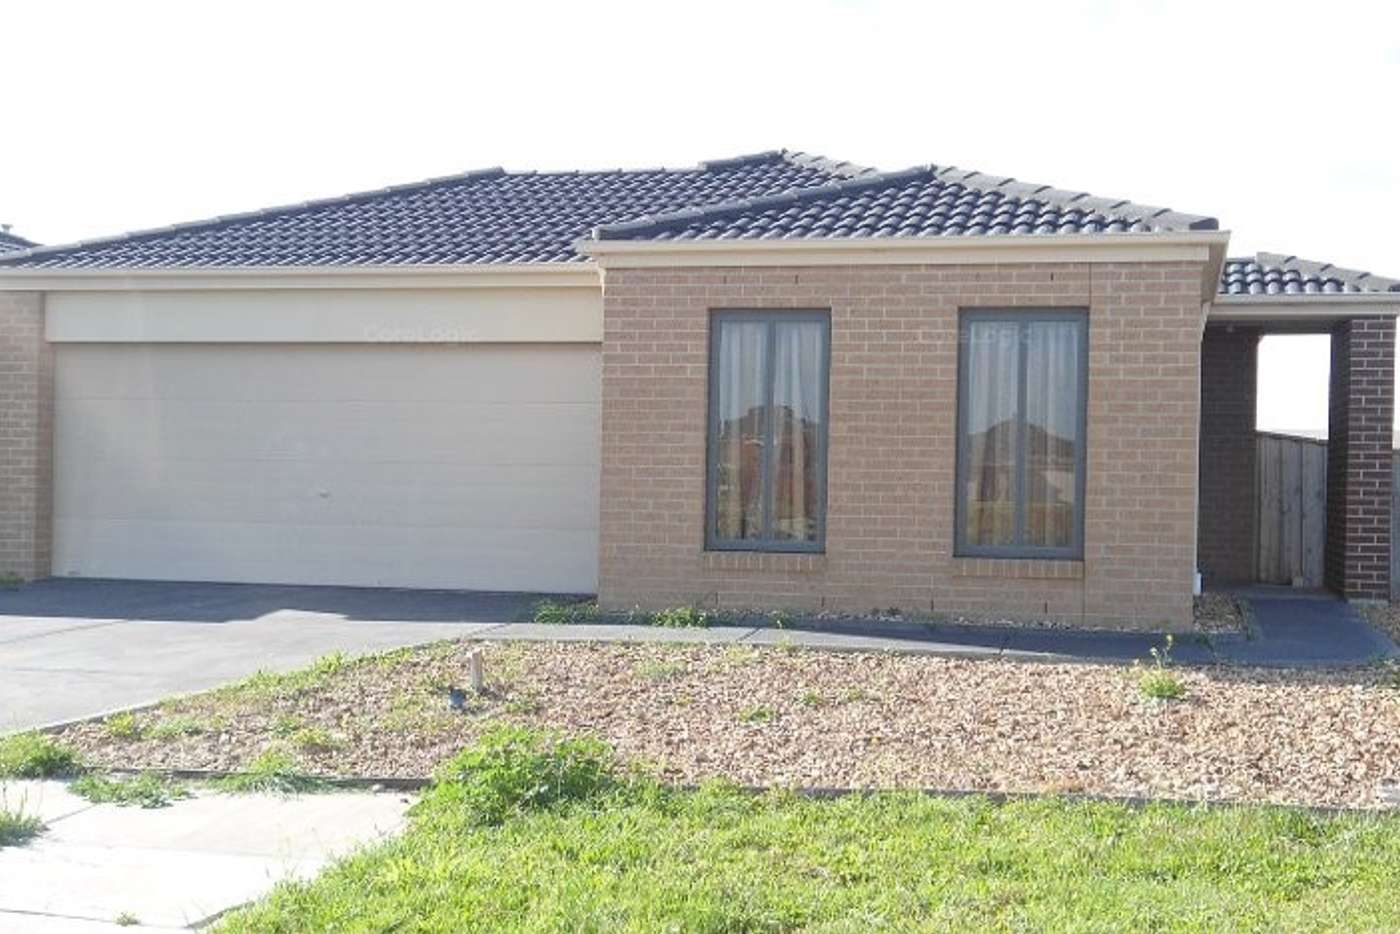 Main view of Homely house listing, 6 Brenda Mews, Derrimut VIC 3030